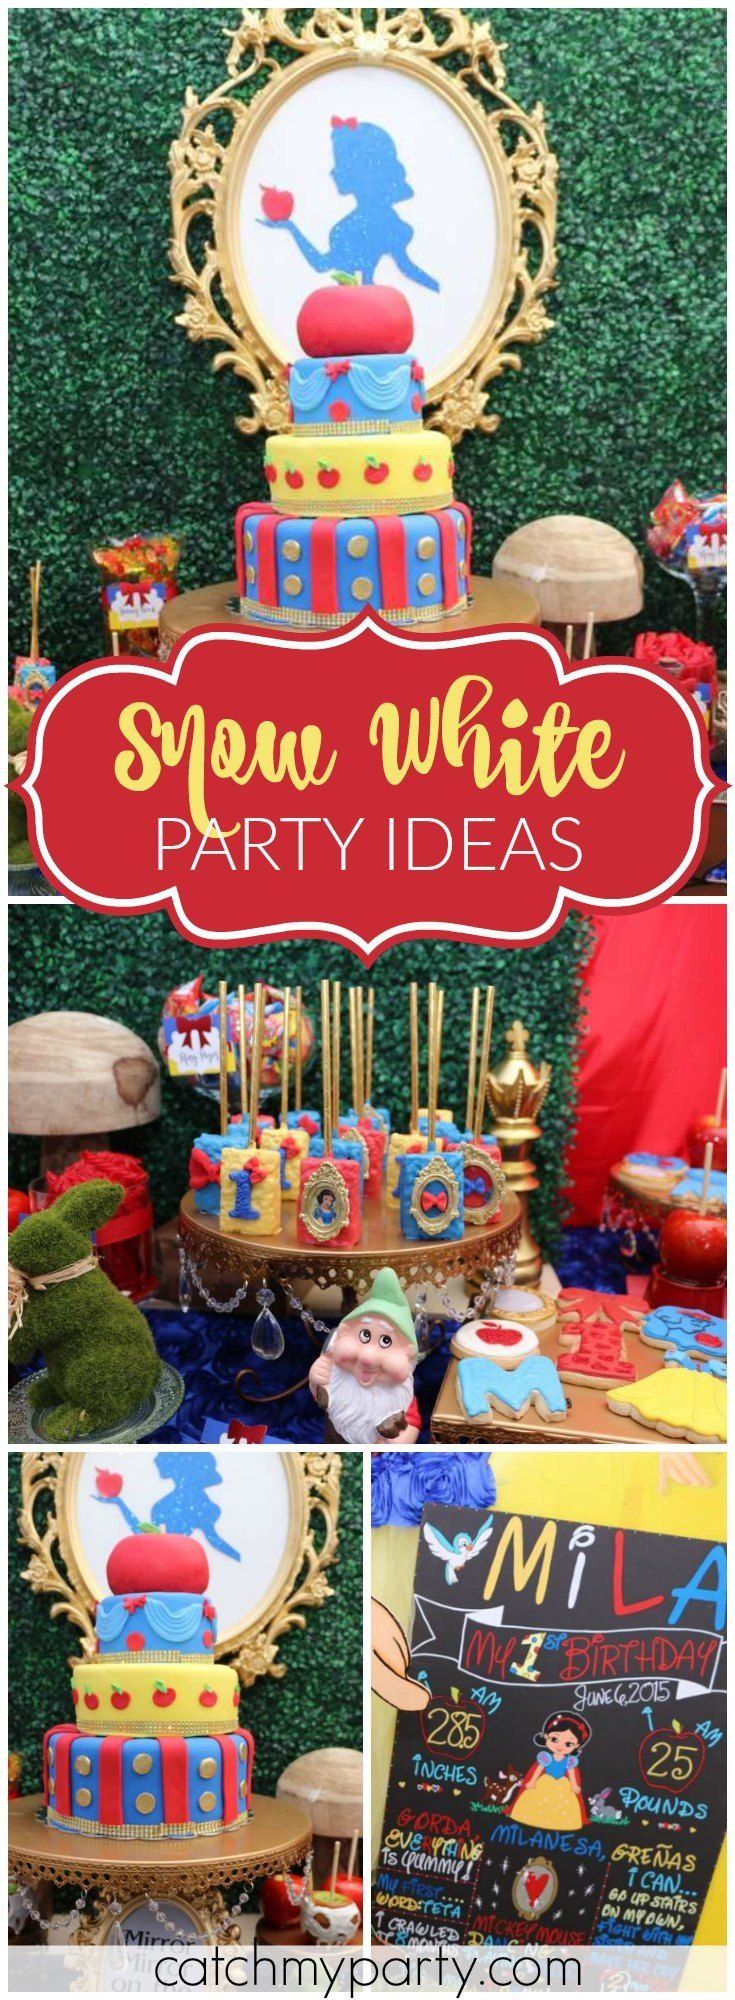 This Snow White girl birthday party is truly magical! See more party ideas at Catchmyparty.com!